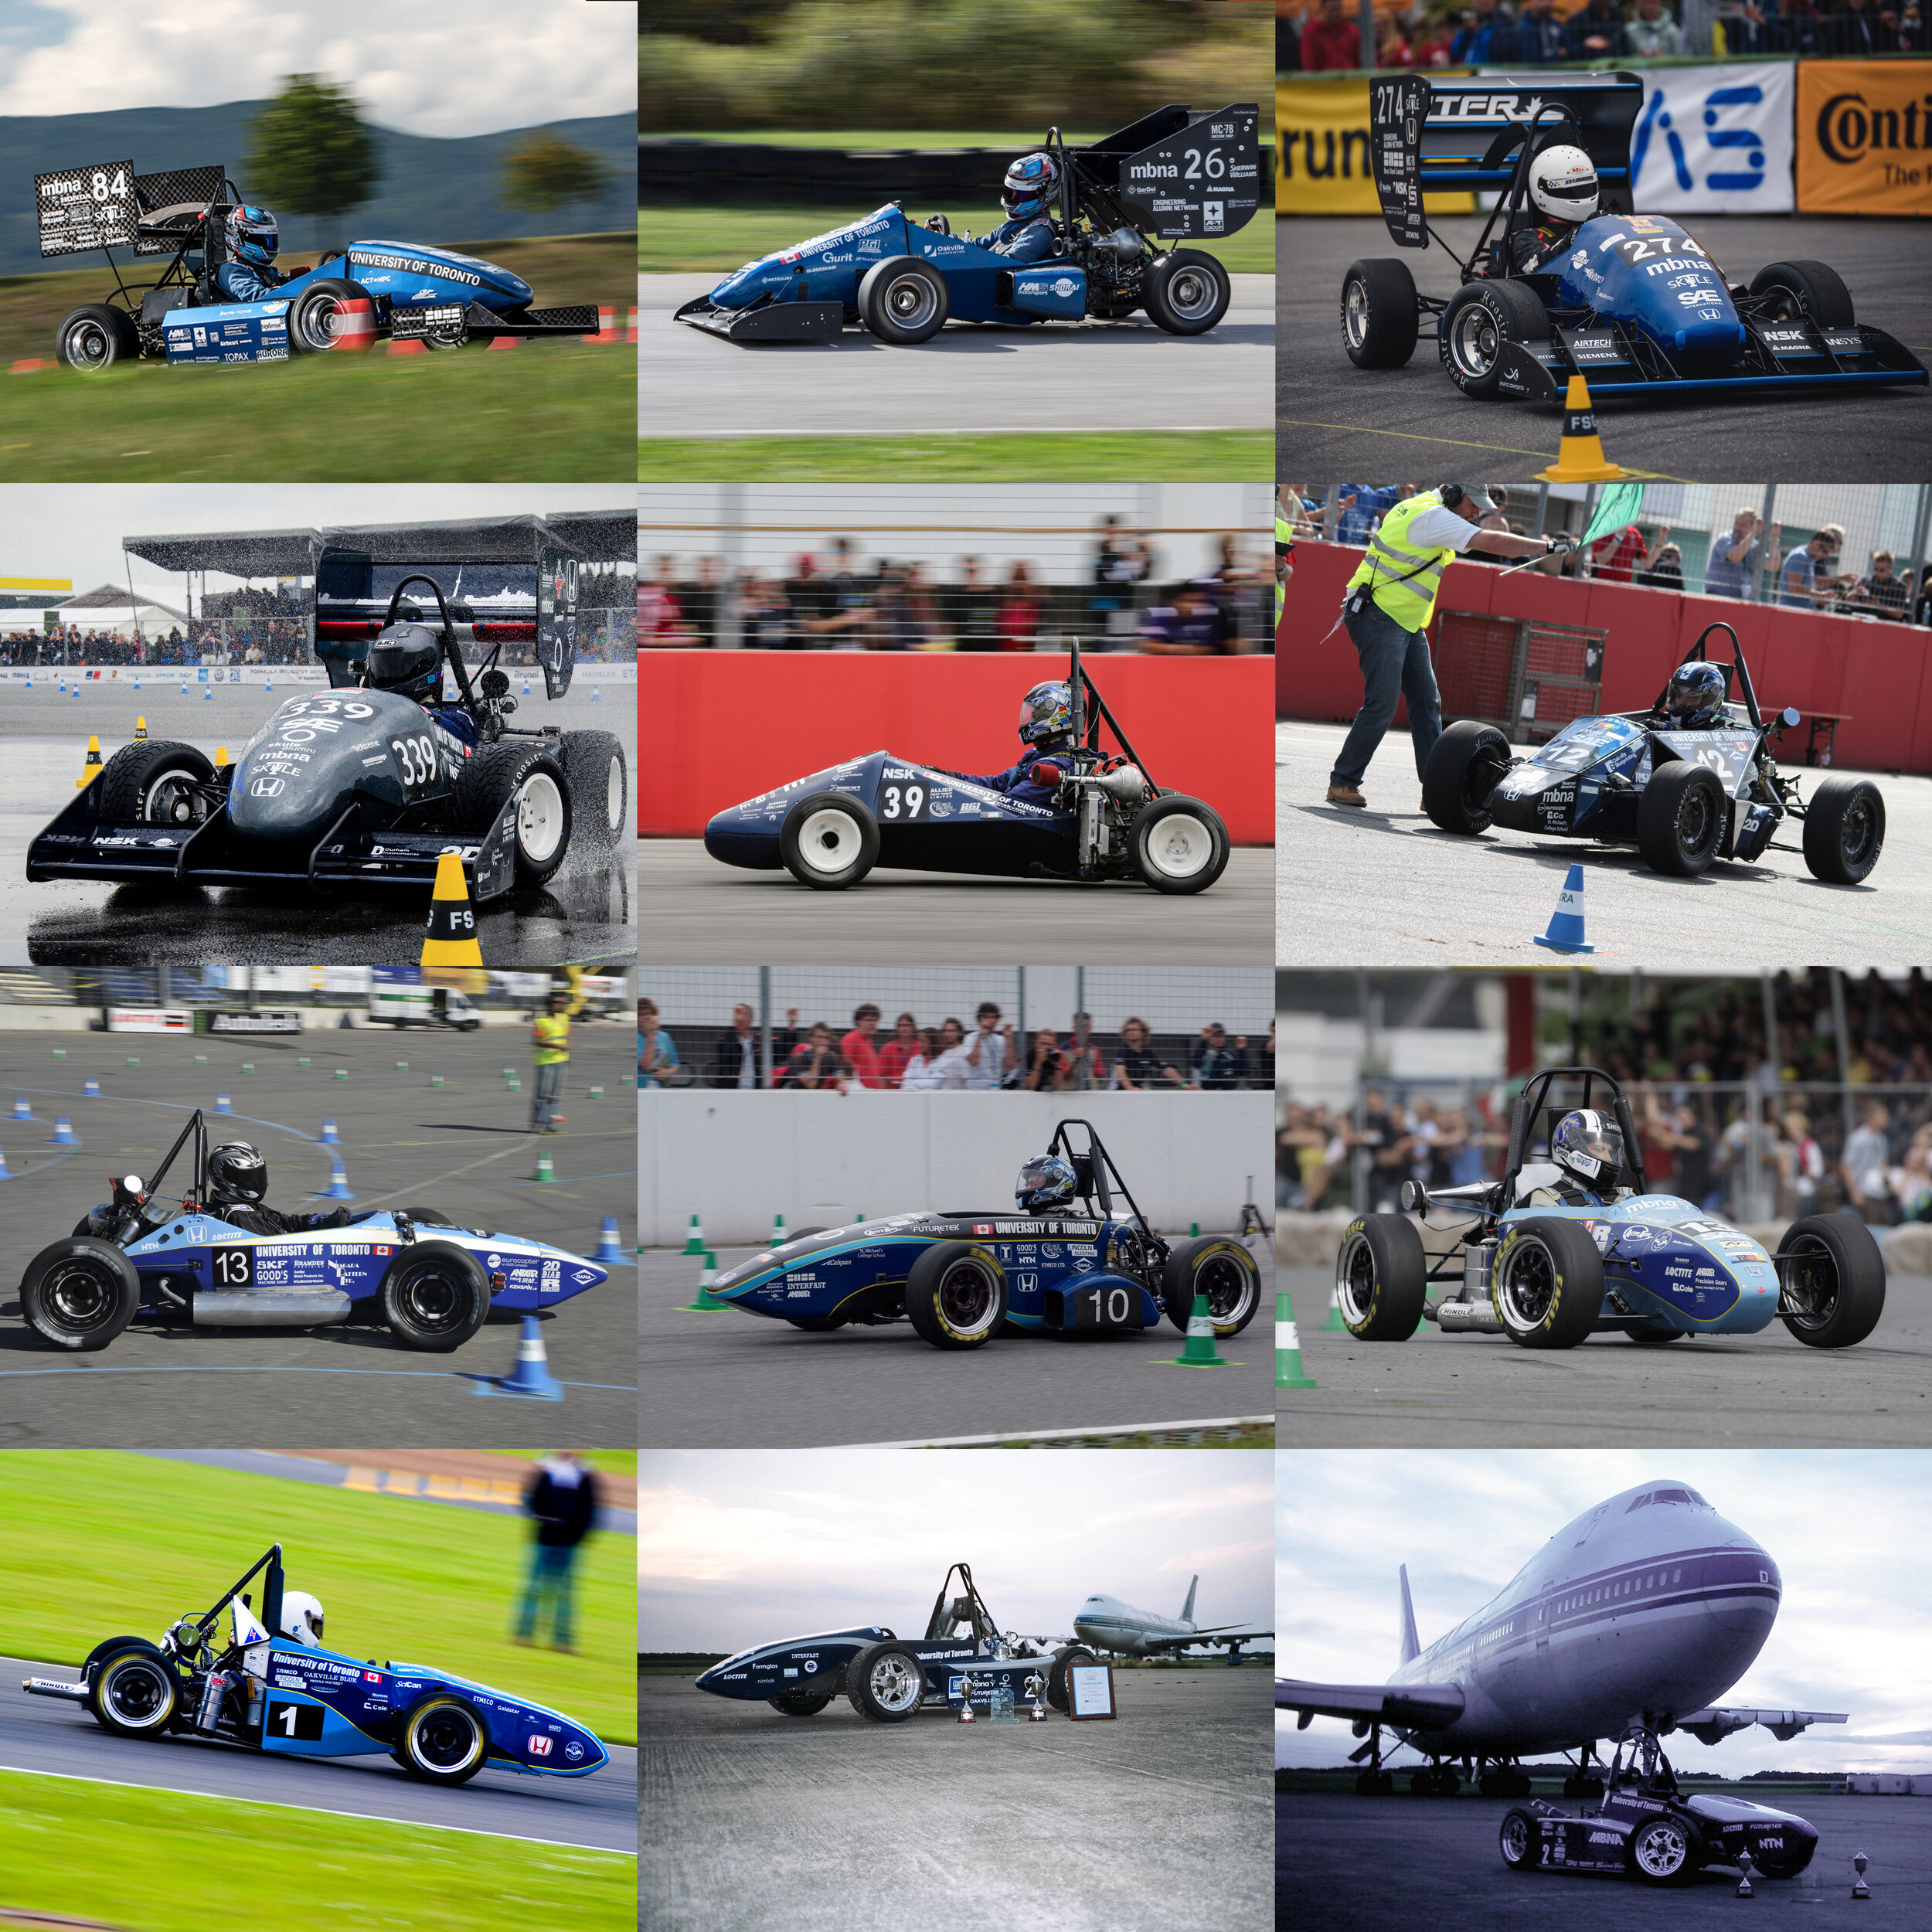 Outstanding pedigree - Celebrating our 22nd year in Formula SAE